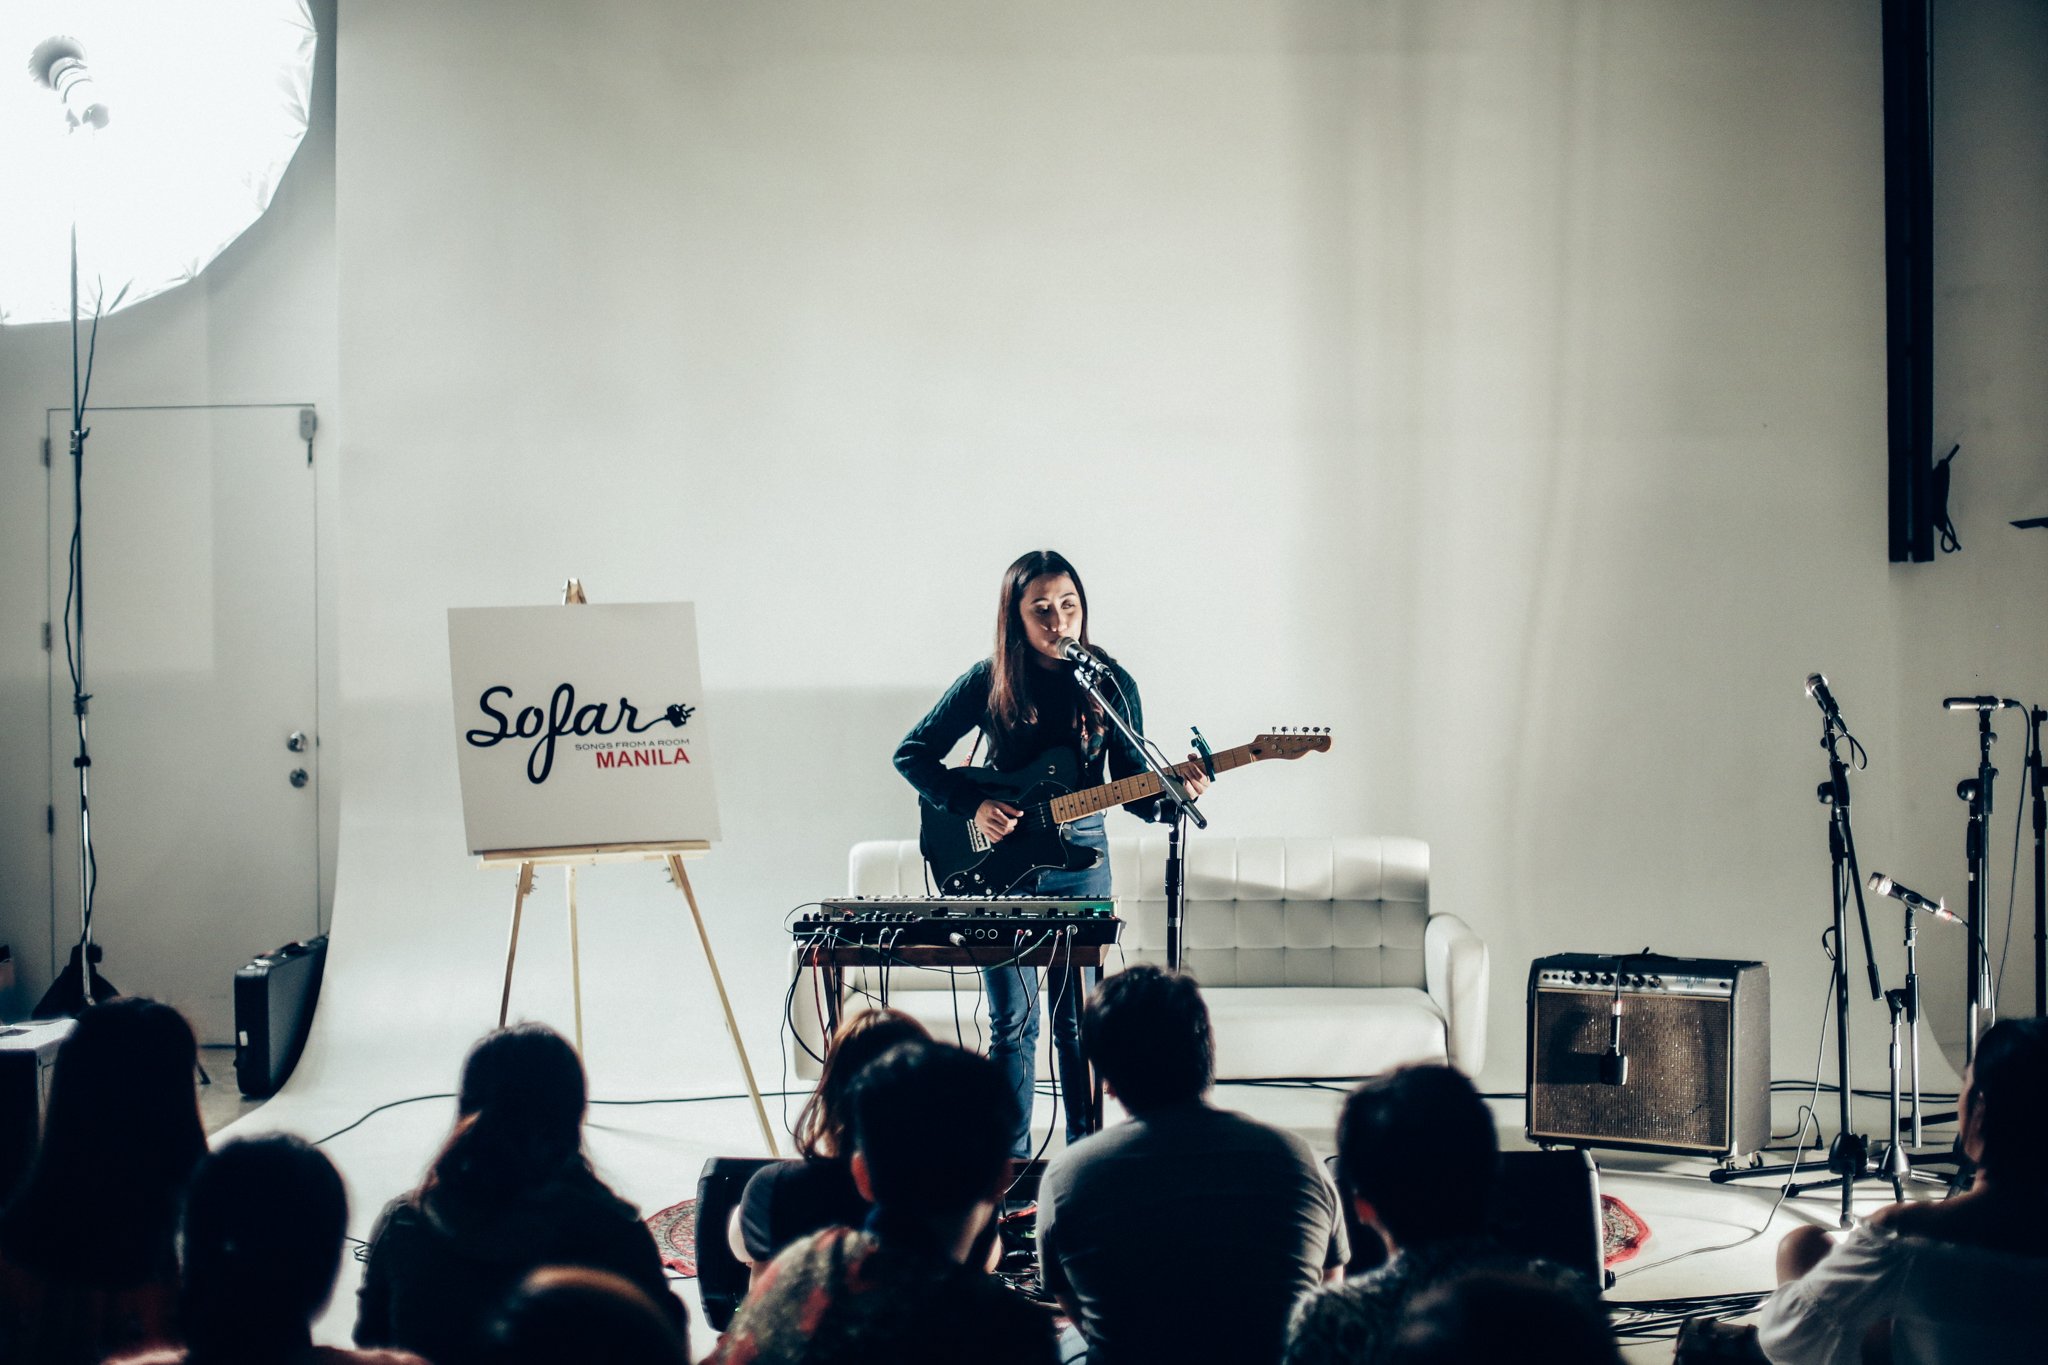 Sofar Sounds Manila: A Quiet Place for Music